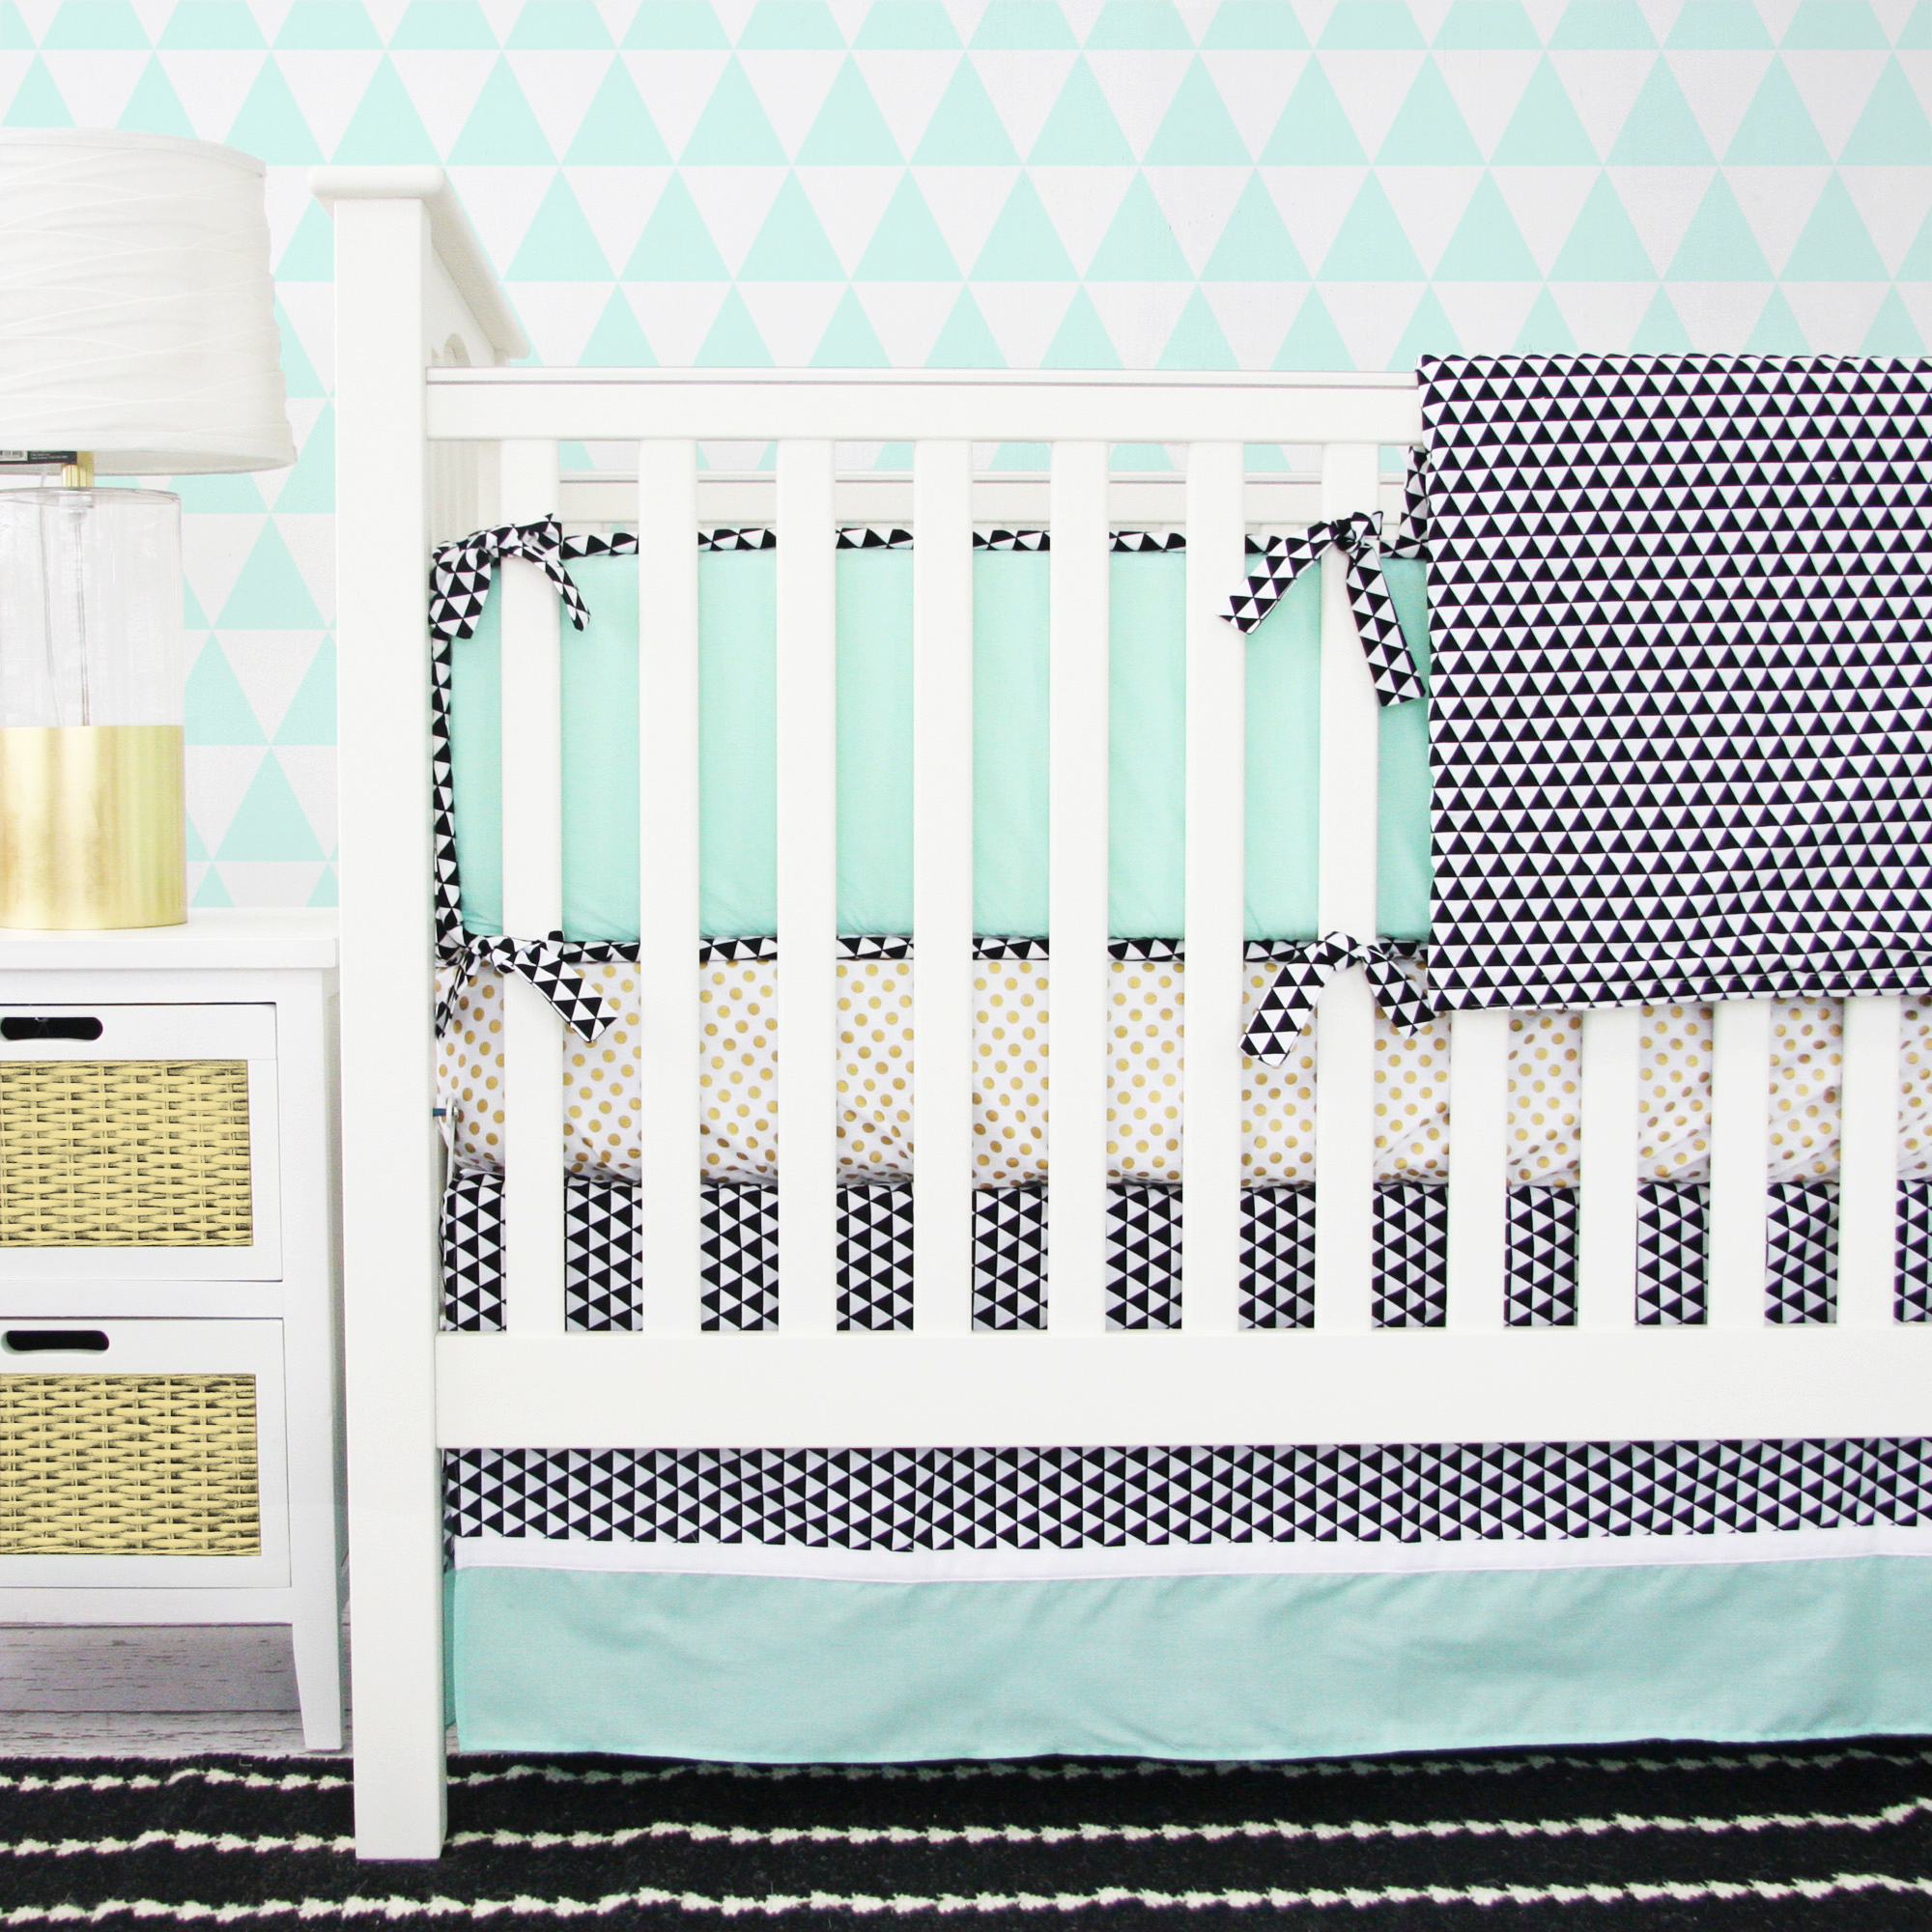 Eclectic Mint Crib Bedding from Caden Lane